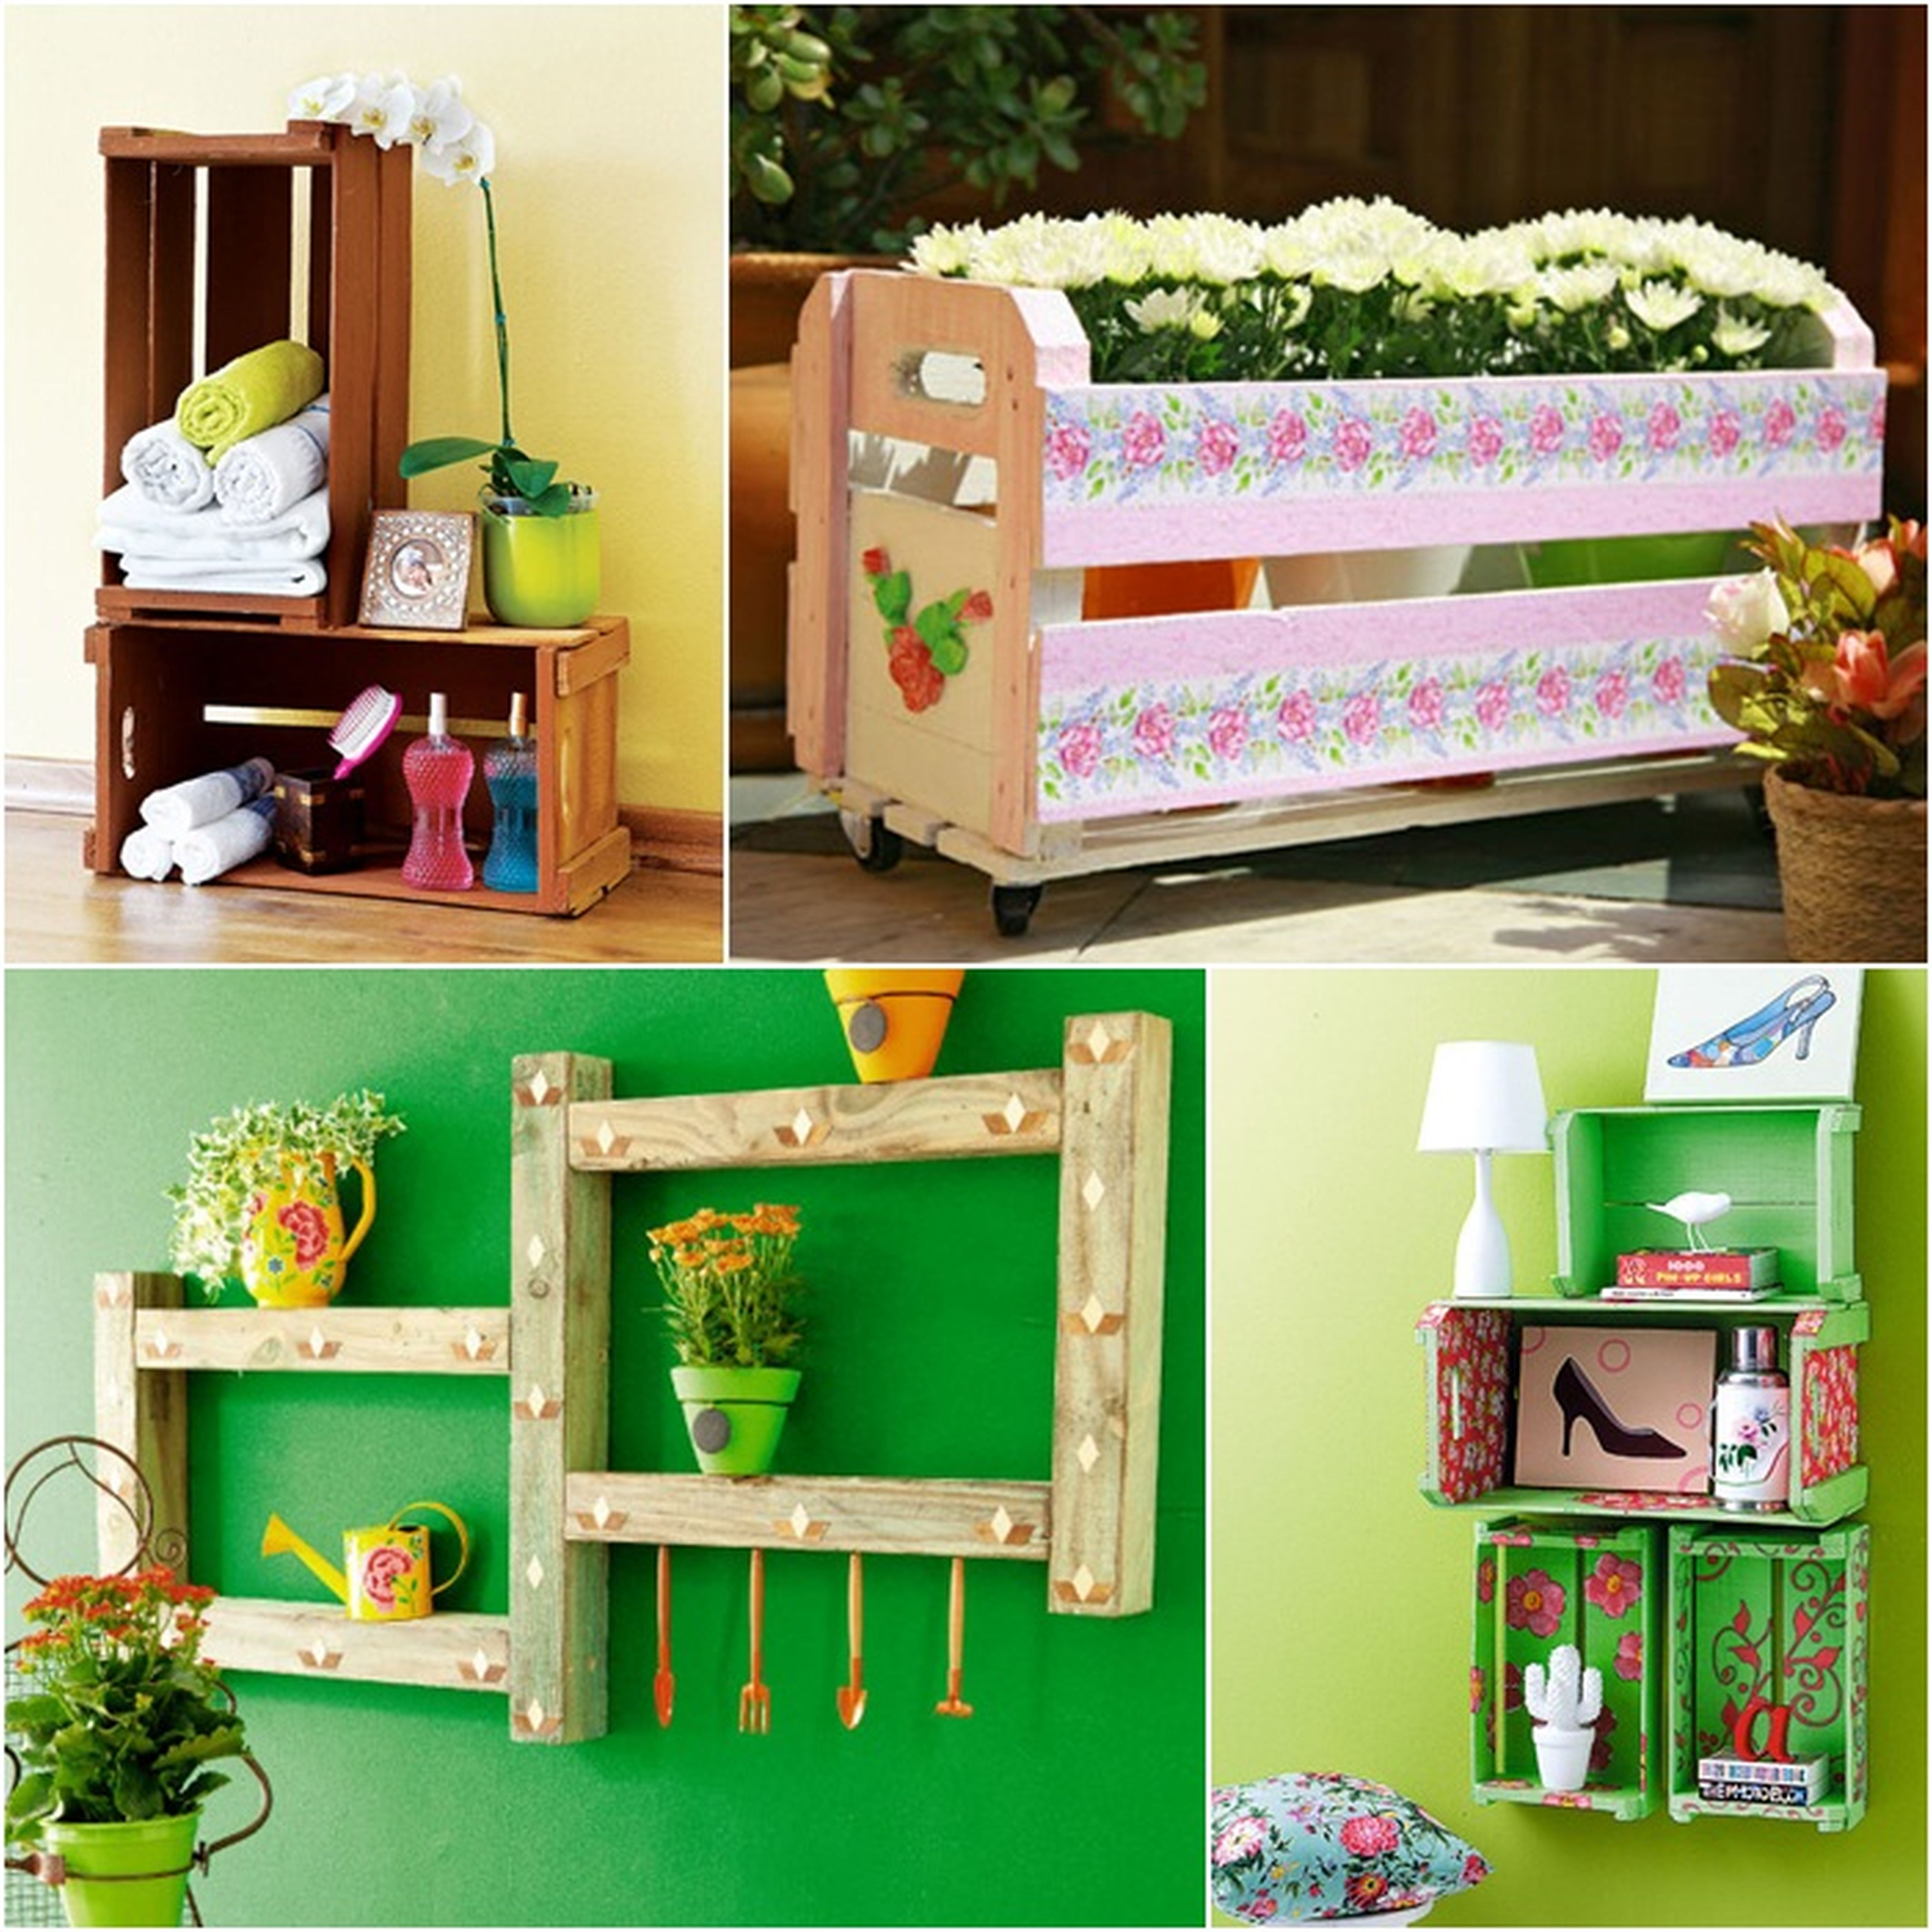 Living Room Diy Home Design Ideas diy home design homesfeed shelf plants pot lamp flower colorful